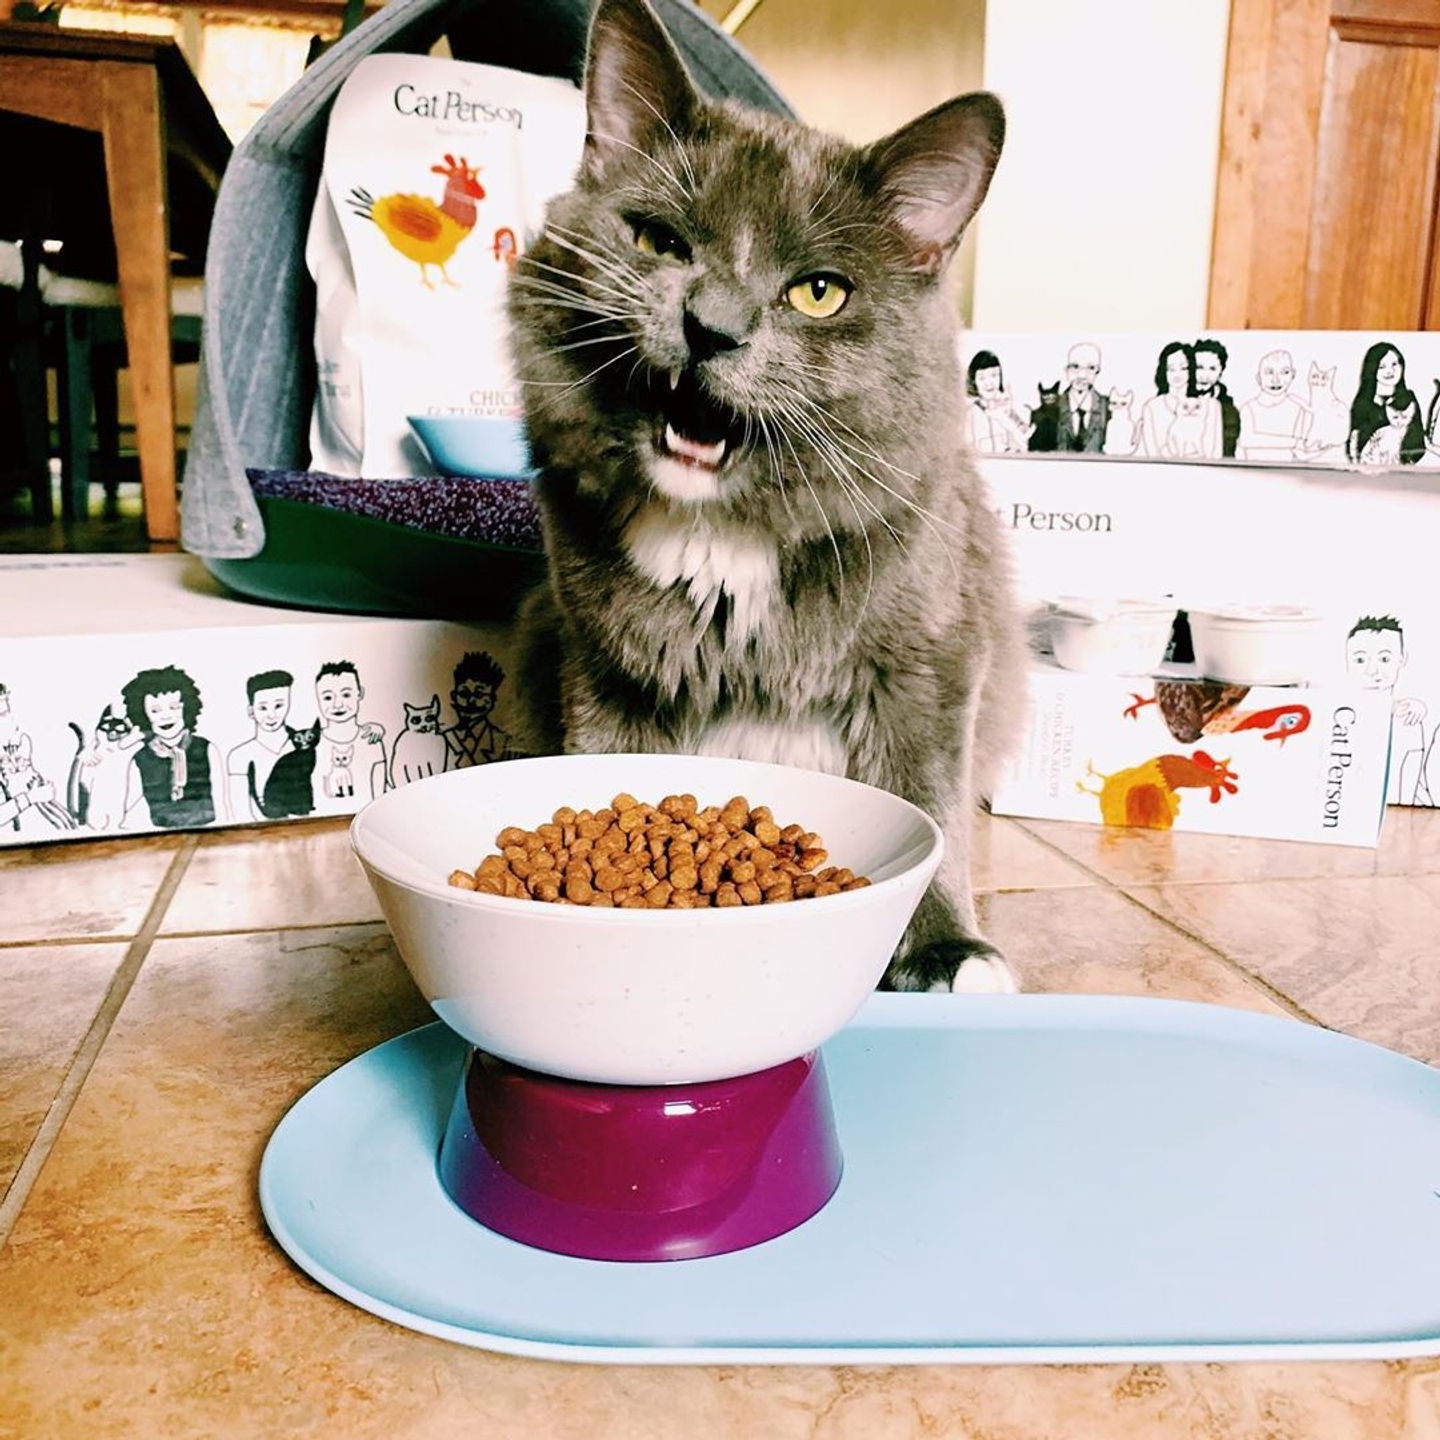 Grey cat eating Cat Person chicken & turkey dry food out of a Cat Person mesa bowl